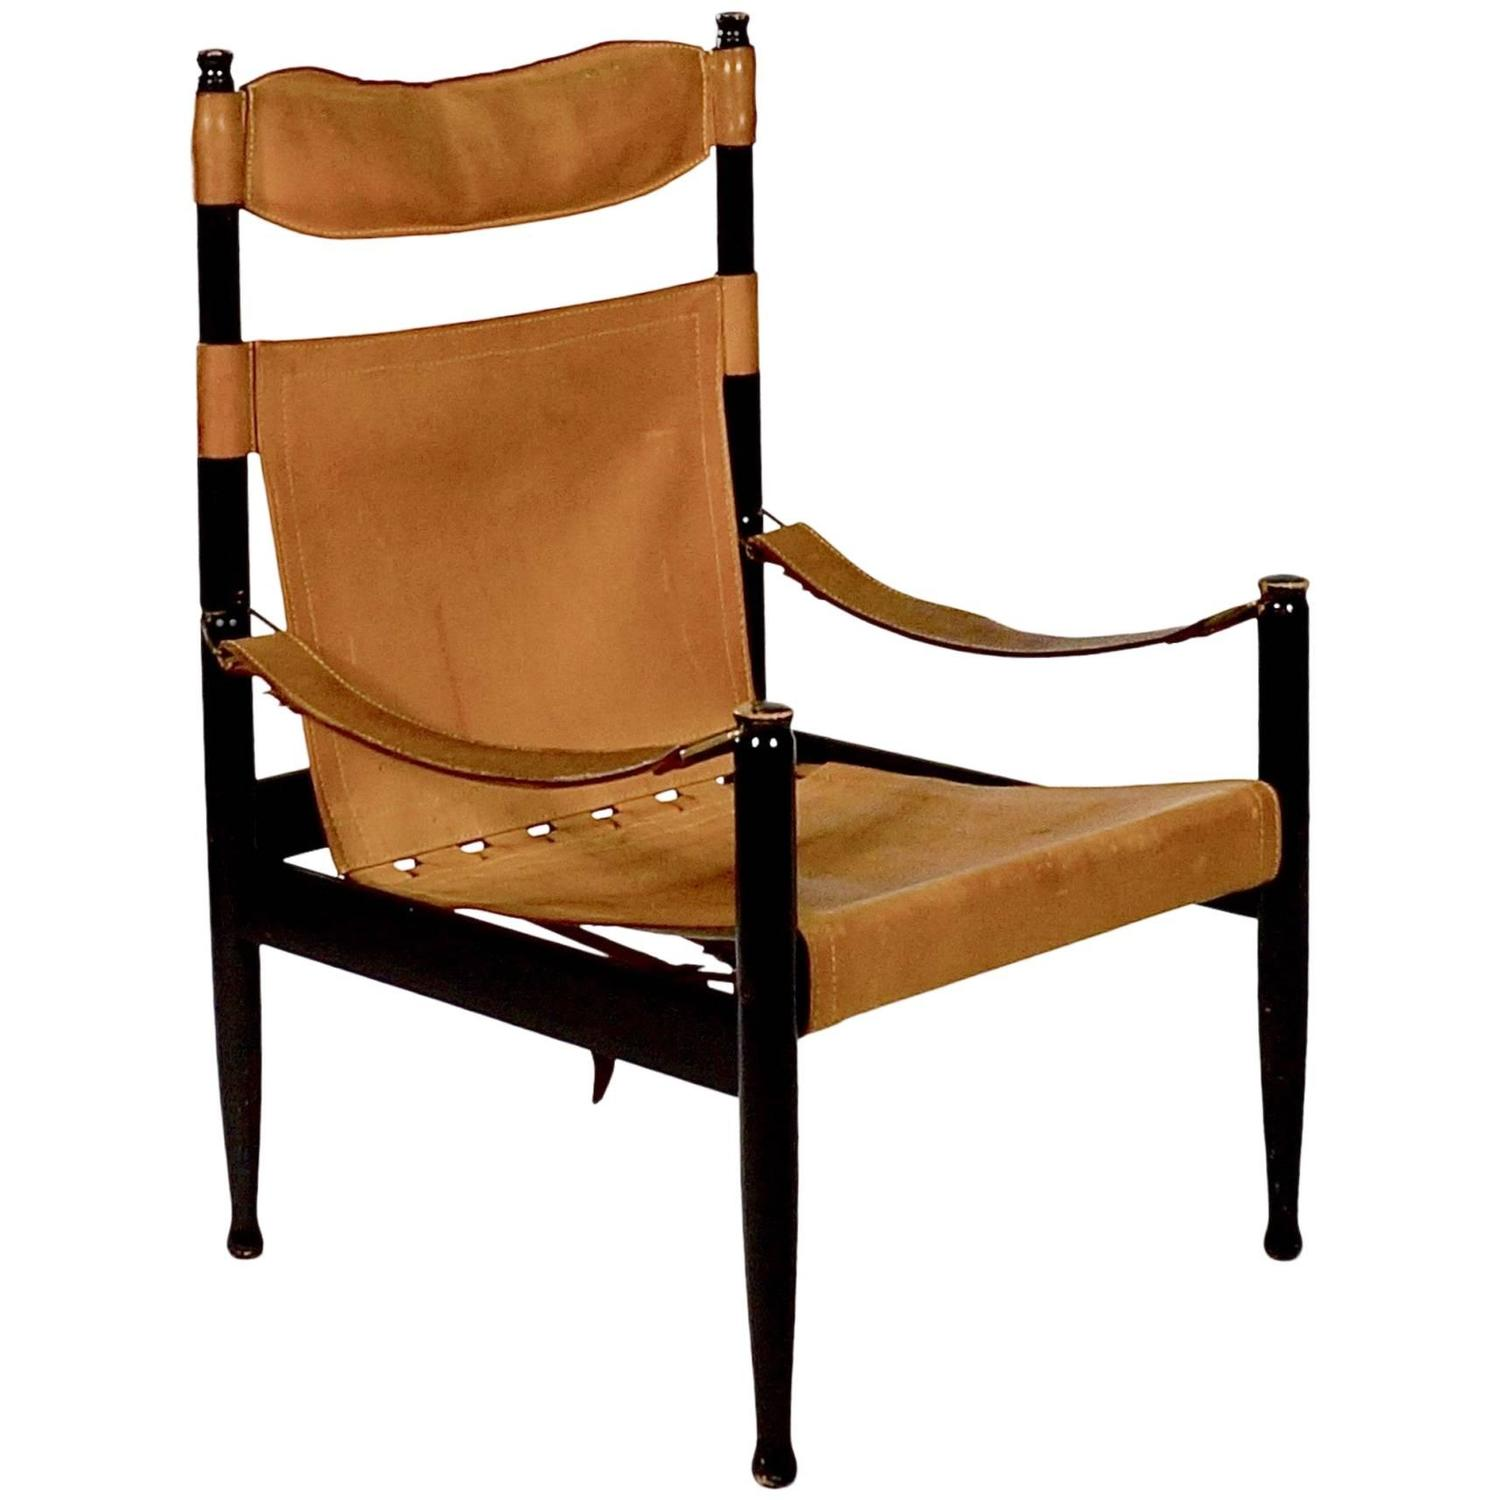 High Back Safari Chair with Slung Tan Leather Seat by Erik Worts